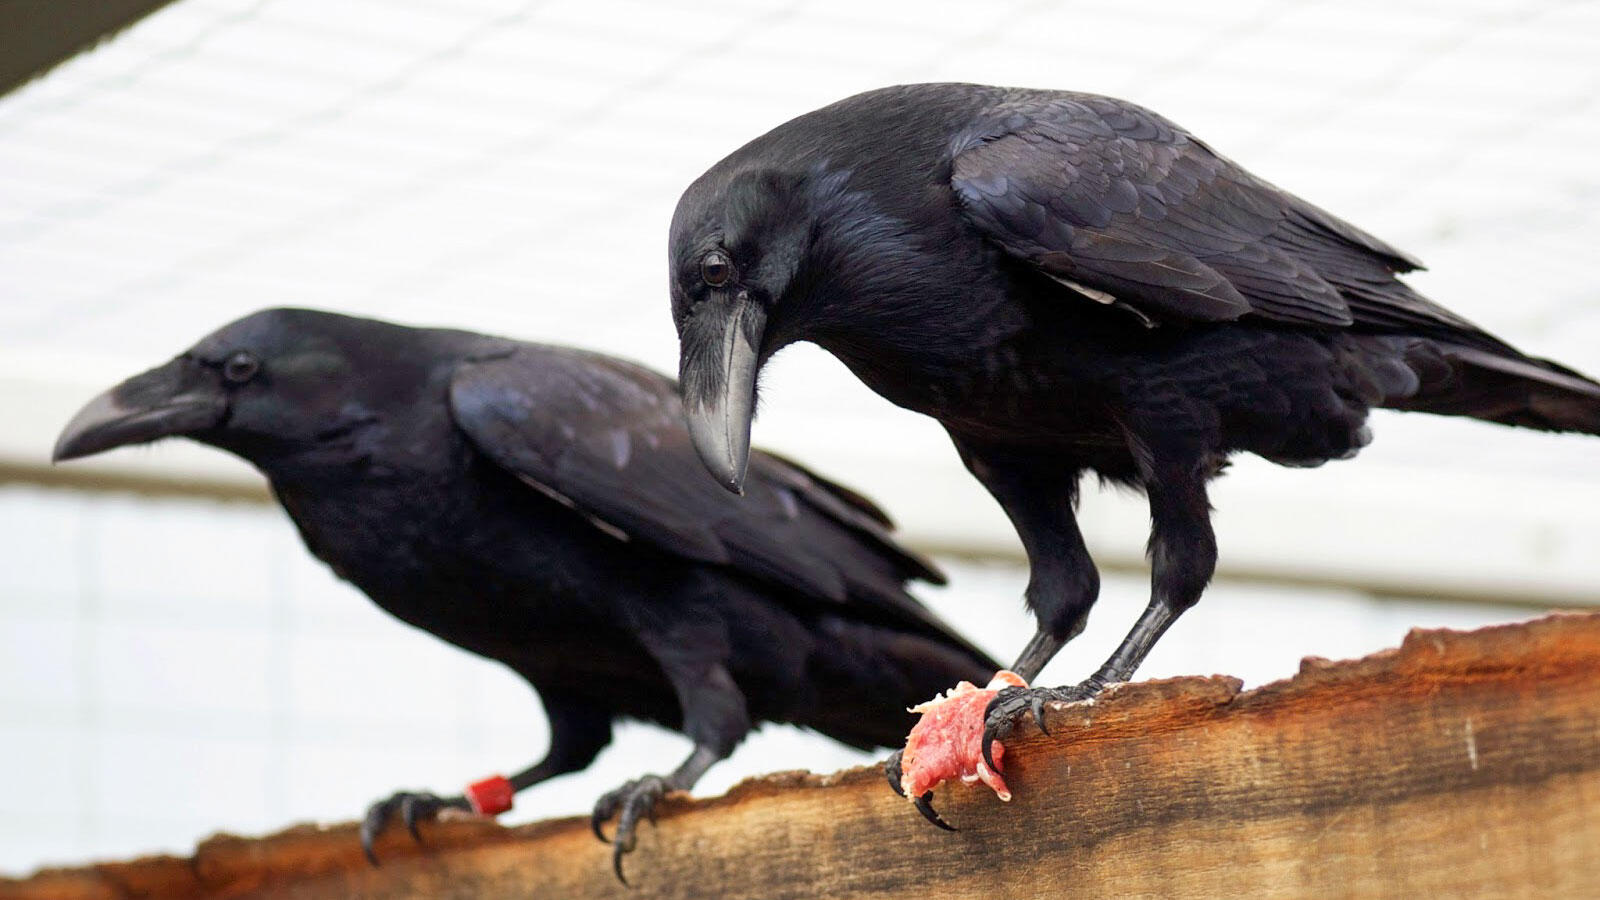 Common Ravens, like Juno and Lillen pictured here, are able to plan for the future, according to a new study. Mathias Osvath